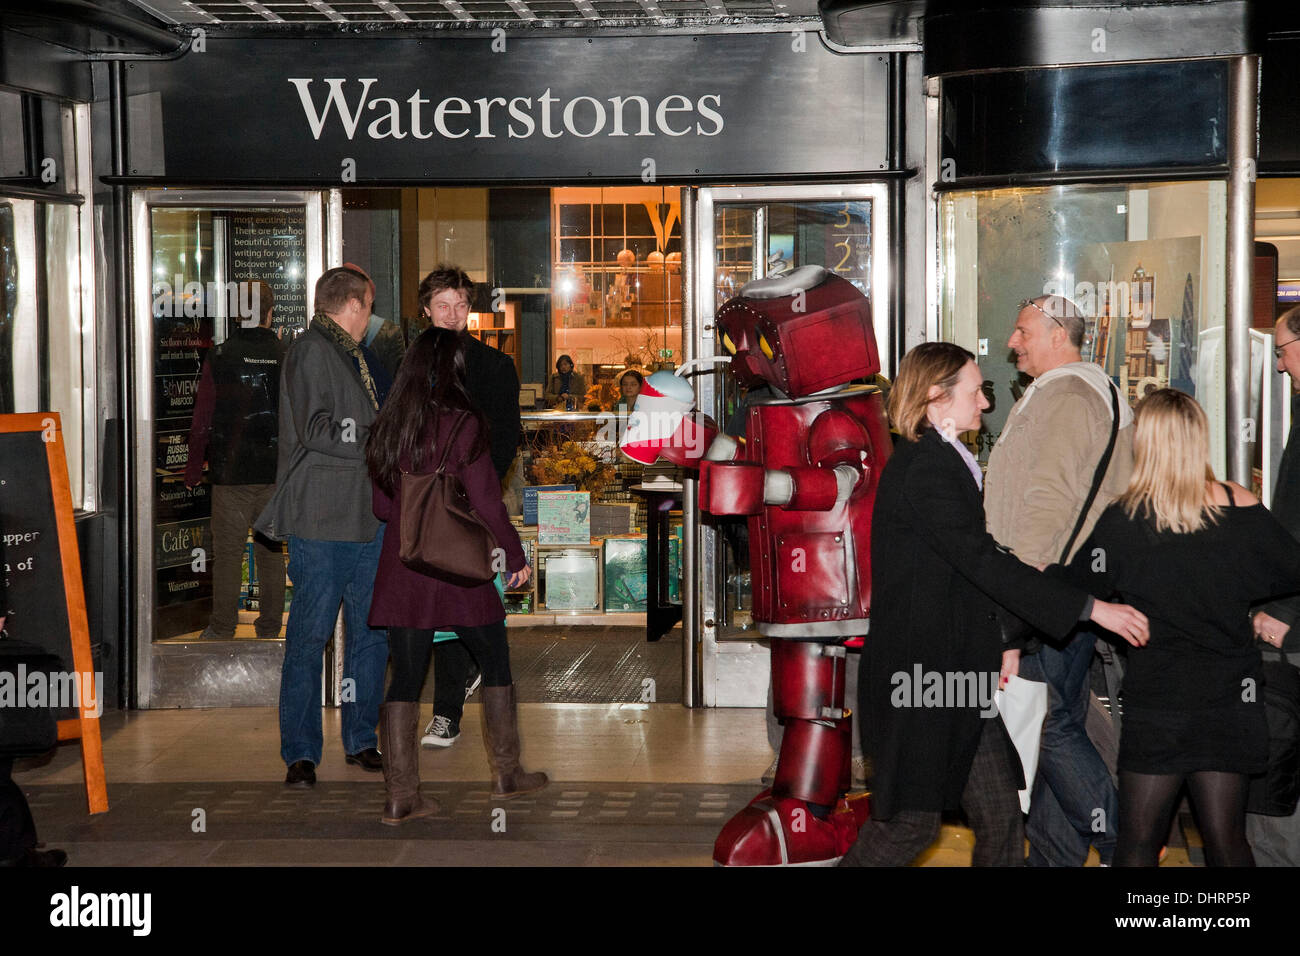 London, UK. 14th November 2013. A man dressed in a Bad Robot costume queues up with other fans outside Waterstones book shop in London's Piccadilly to have copies of S. signed by its author JJ Abrams. Credit:  Pete Maclaine/Alamy Live News - Stock Image